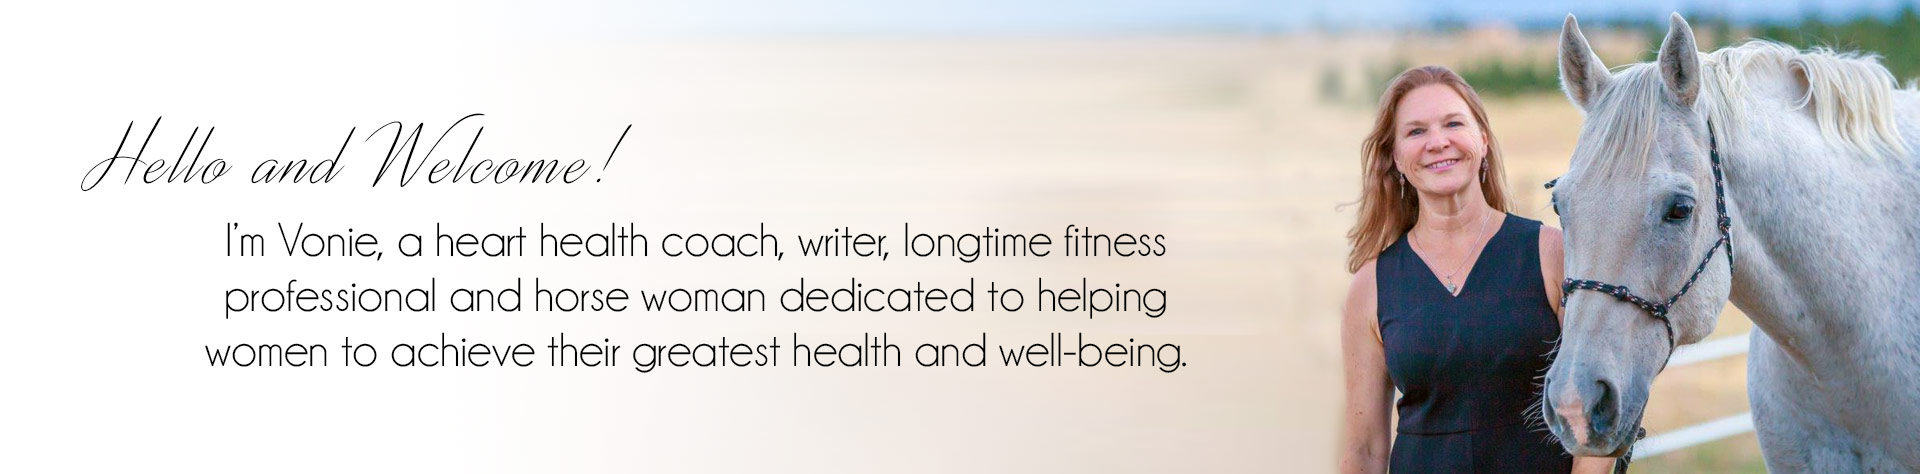 Welcome. I'm Vonie, a heart health coach, writer, fitness professional and horsewoman.